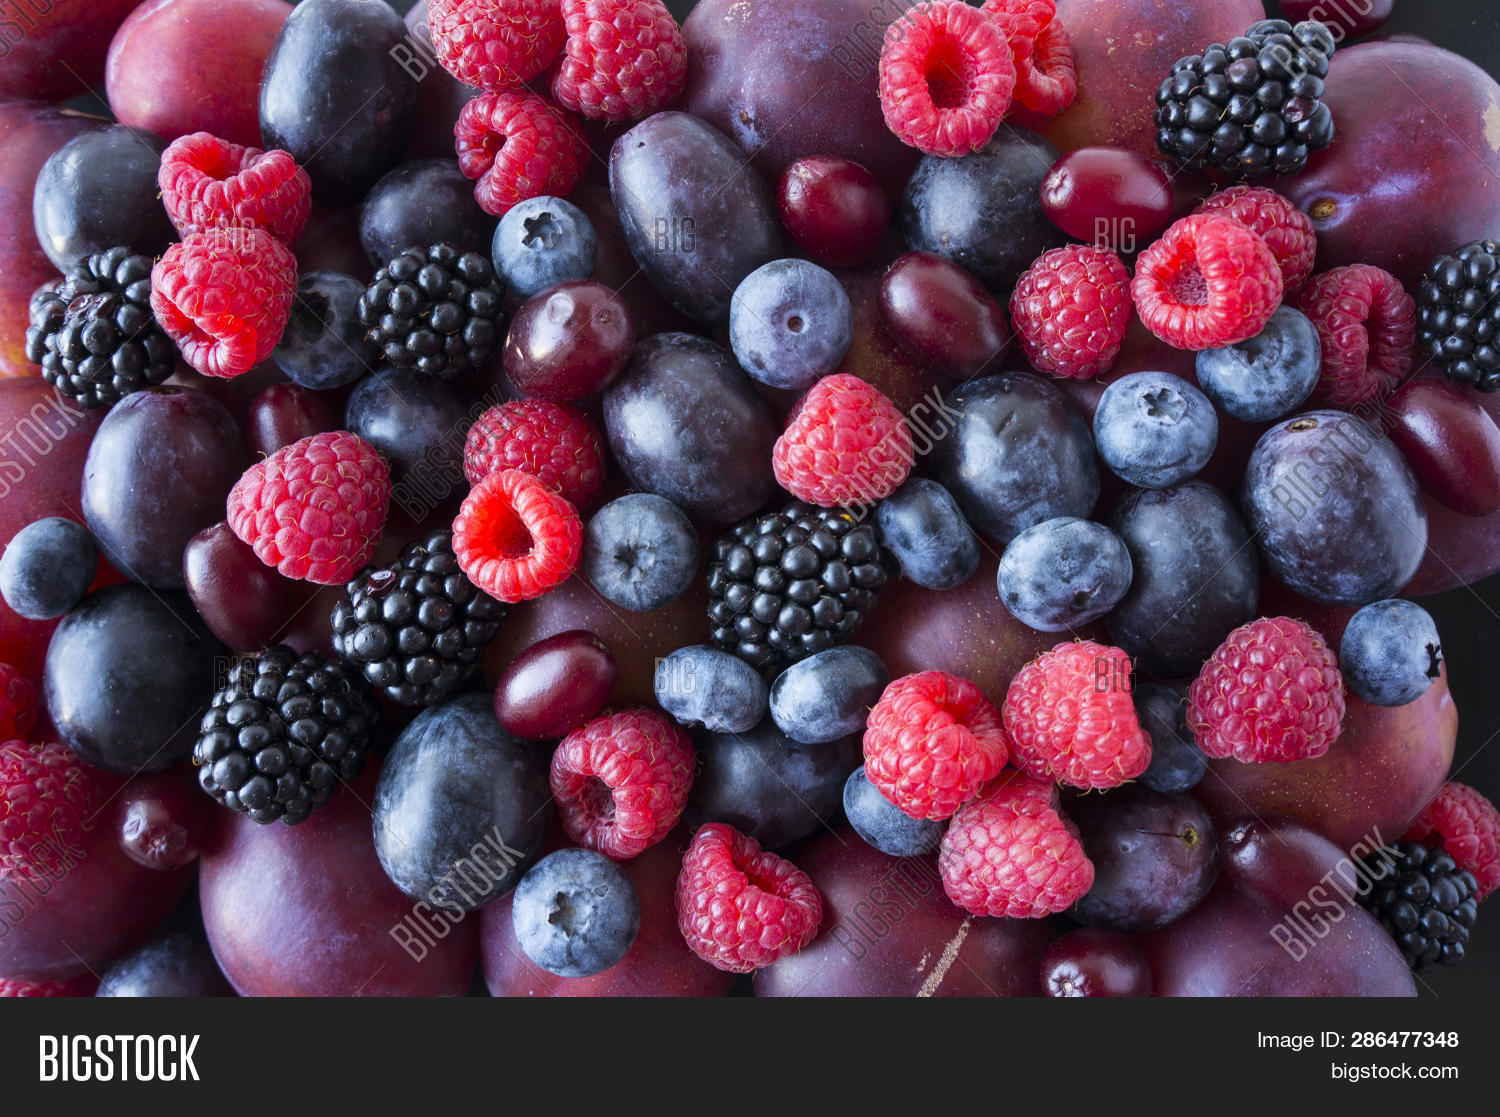 agriculture,background,berry,blackberries,blueberry,close,closeup,color,colorful,copy,delicious,dessert,diet,different,food,fresh,fruit,garden,group,health,juice,juicy,kitchen,market,mix,mixed,nature,nutrition,nutritious,organic,plants,plum,raspberries,red,ripe,space,summer,sweet,tasty,text,up,variety,vegetarian,vitamin,white